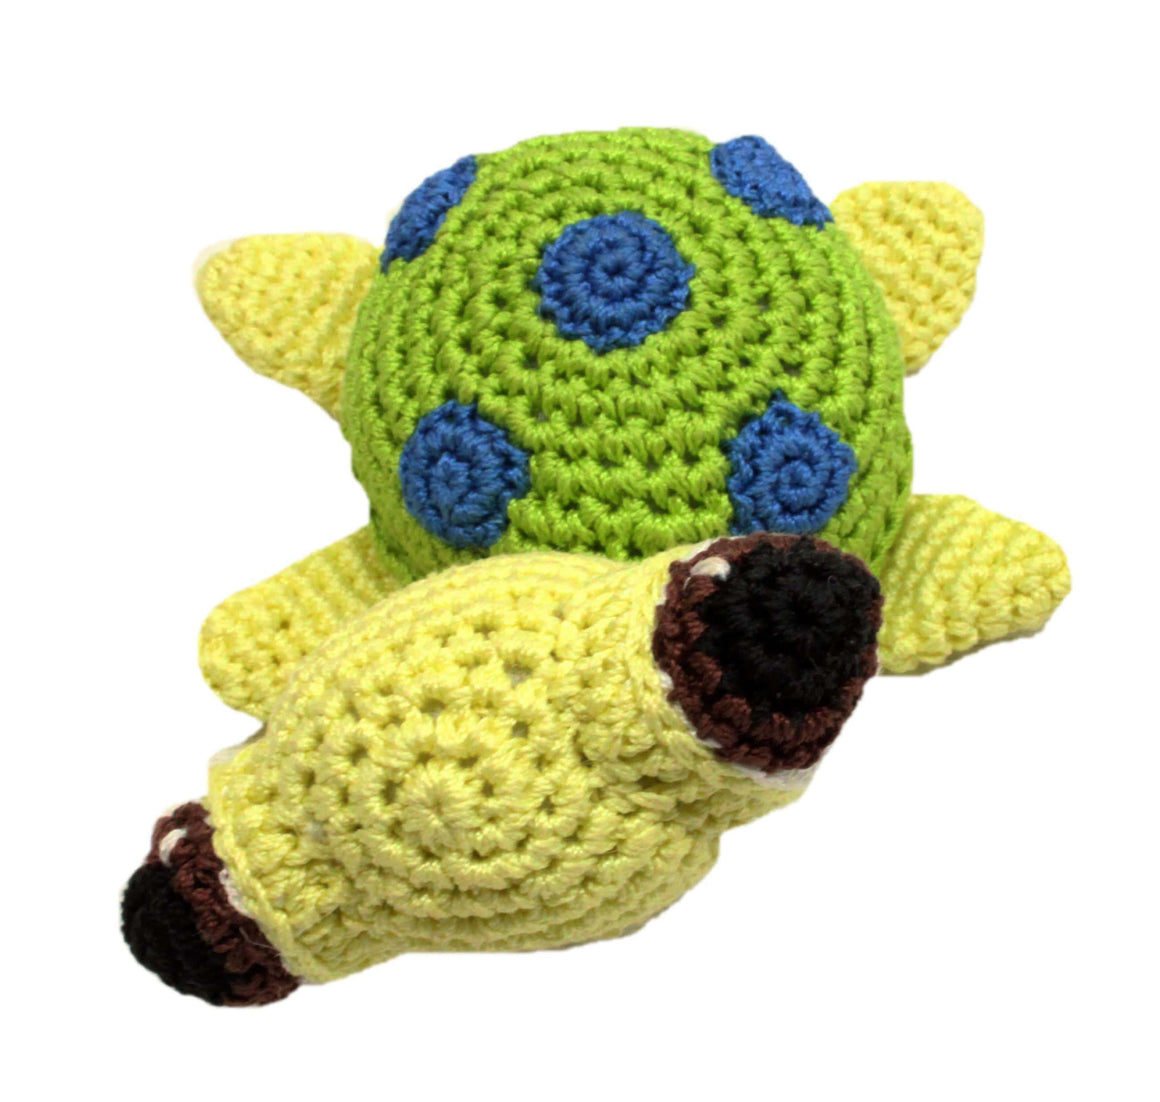 Doggy Stylz Dog-products Toys Knit Knacks Squish The Sea Turtle Organic Cotton Small Dog Toy